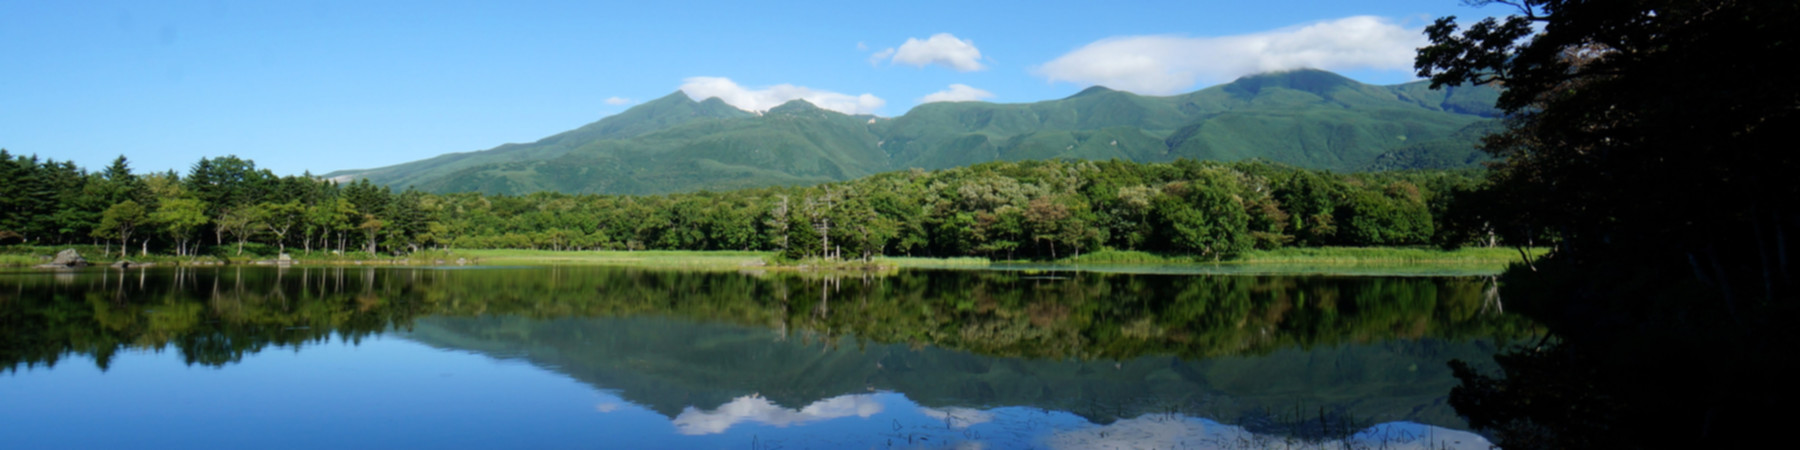 Shiretoko National Park Japan